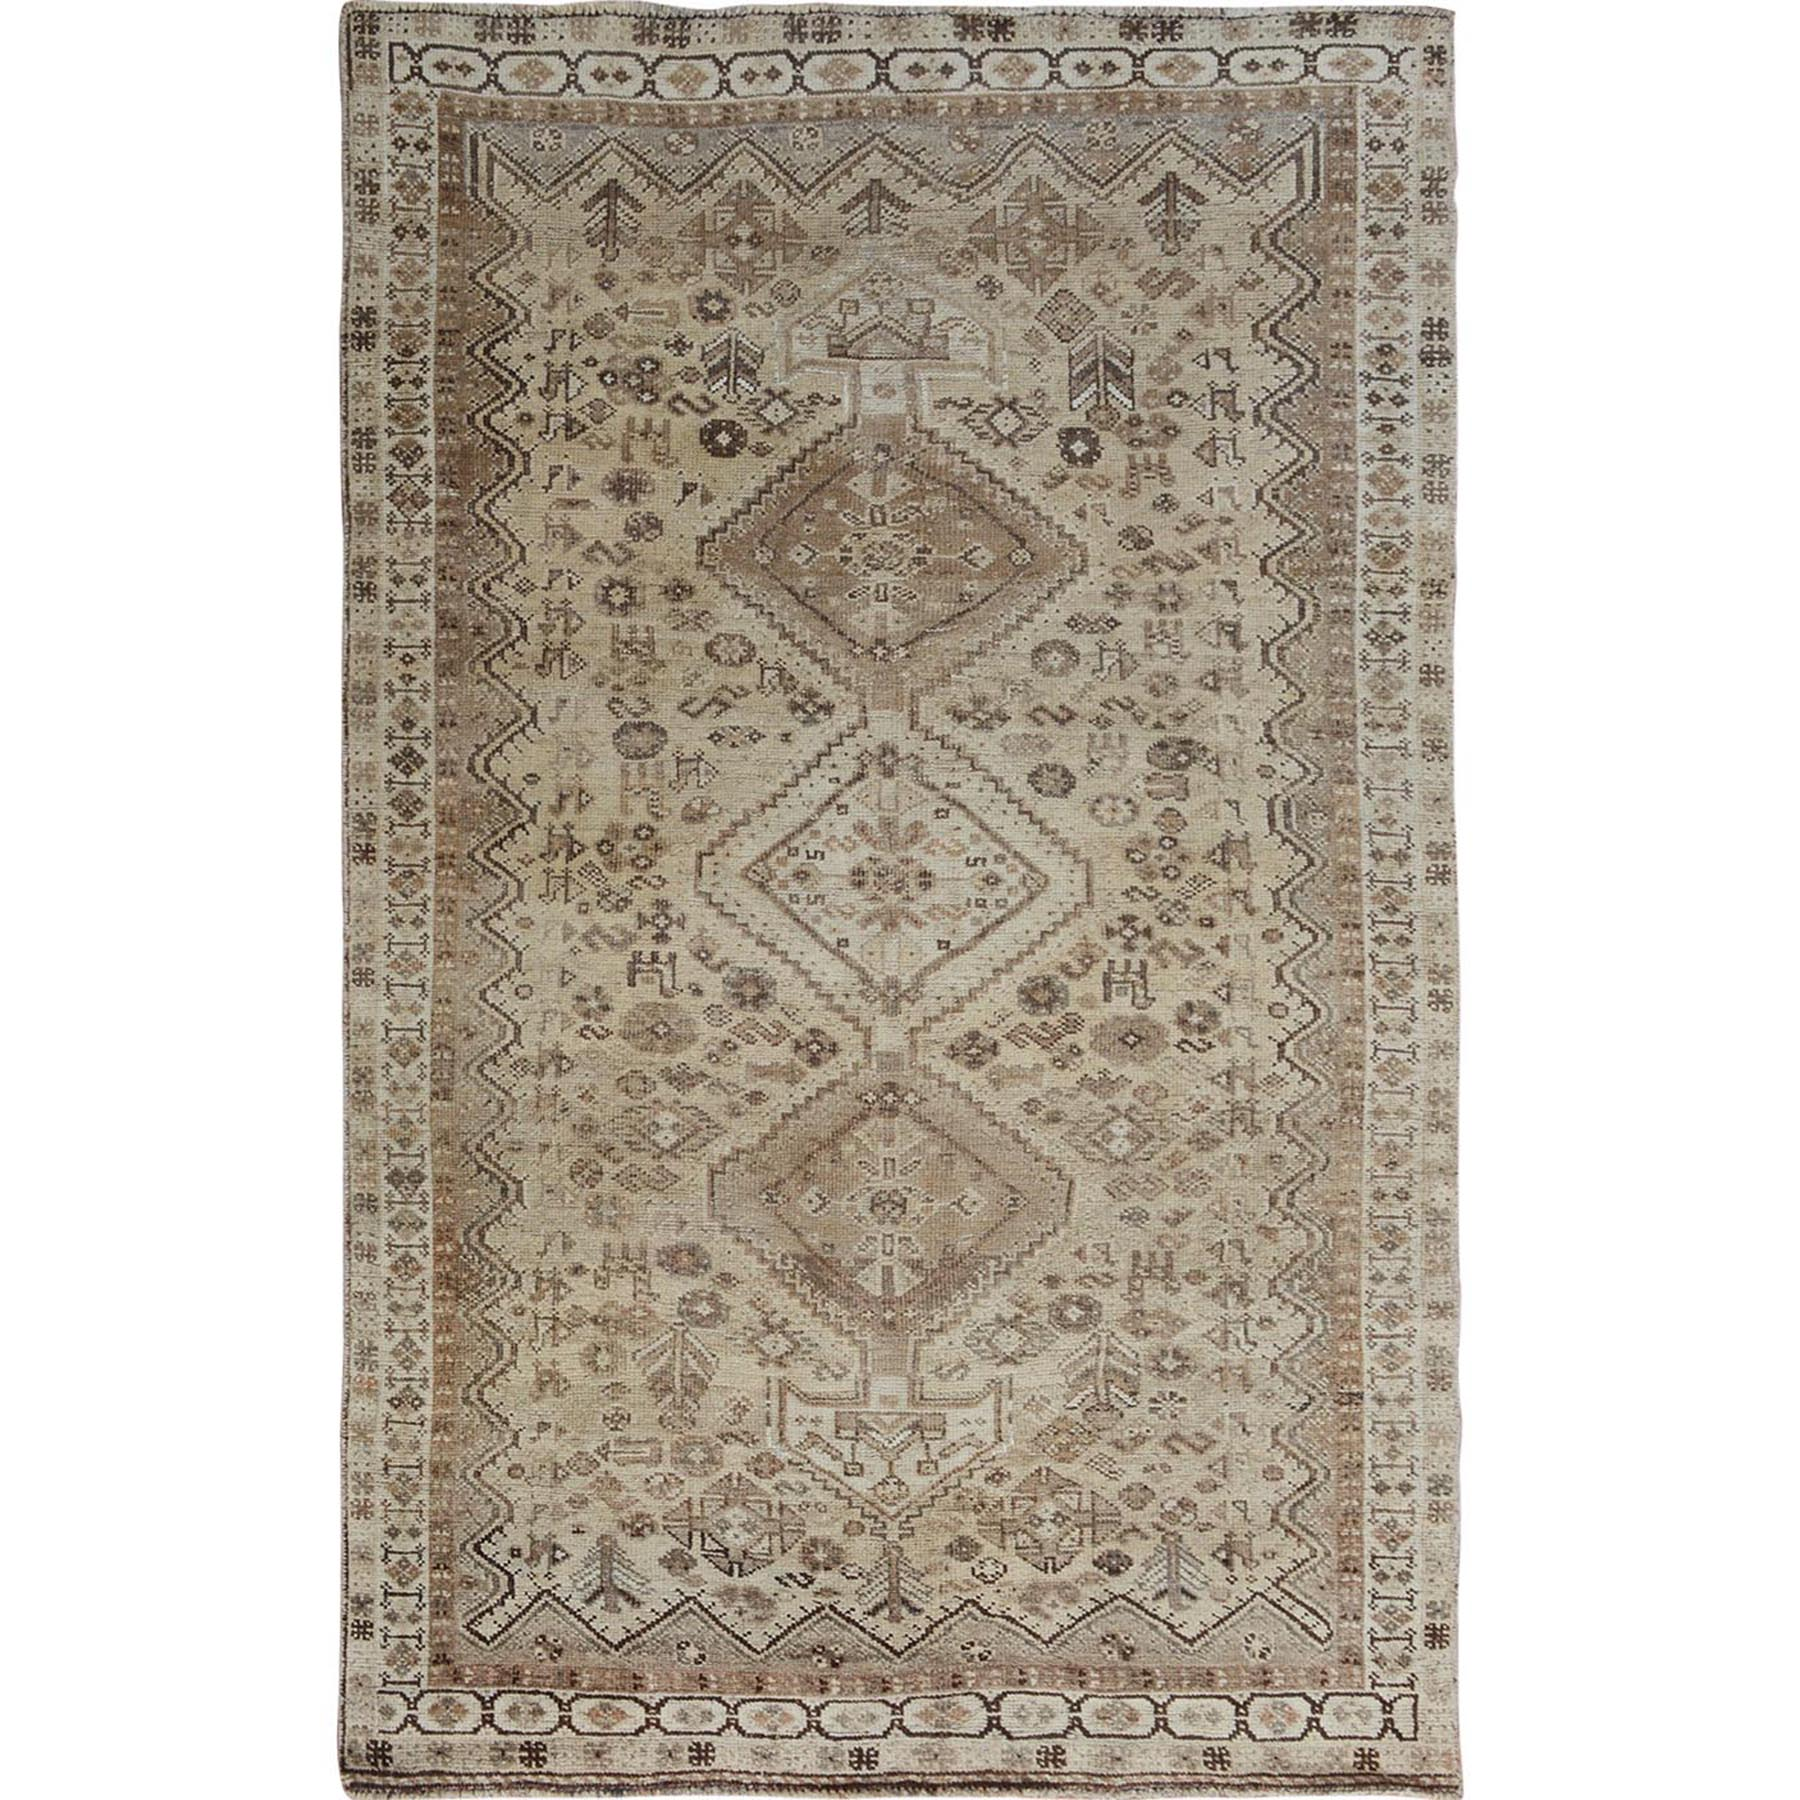 "4'10""x7'8"" Beige Old And Worn Down Persian Qashqai Pure Wool Hand Woven Oriental Rug"